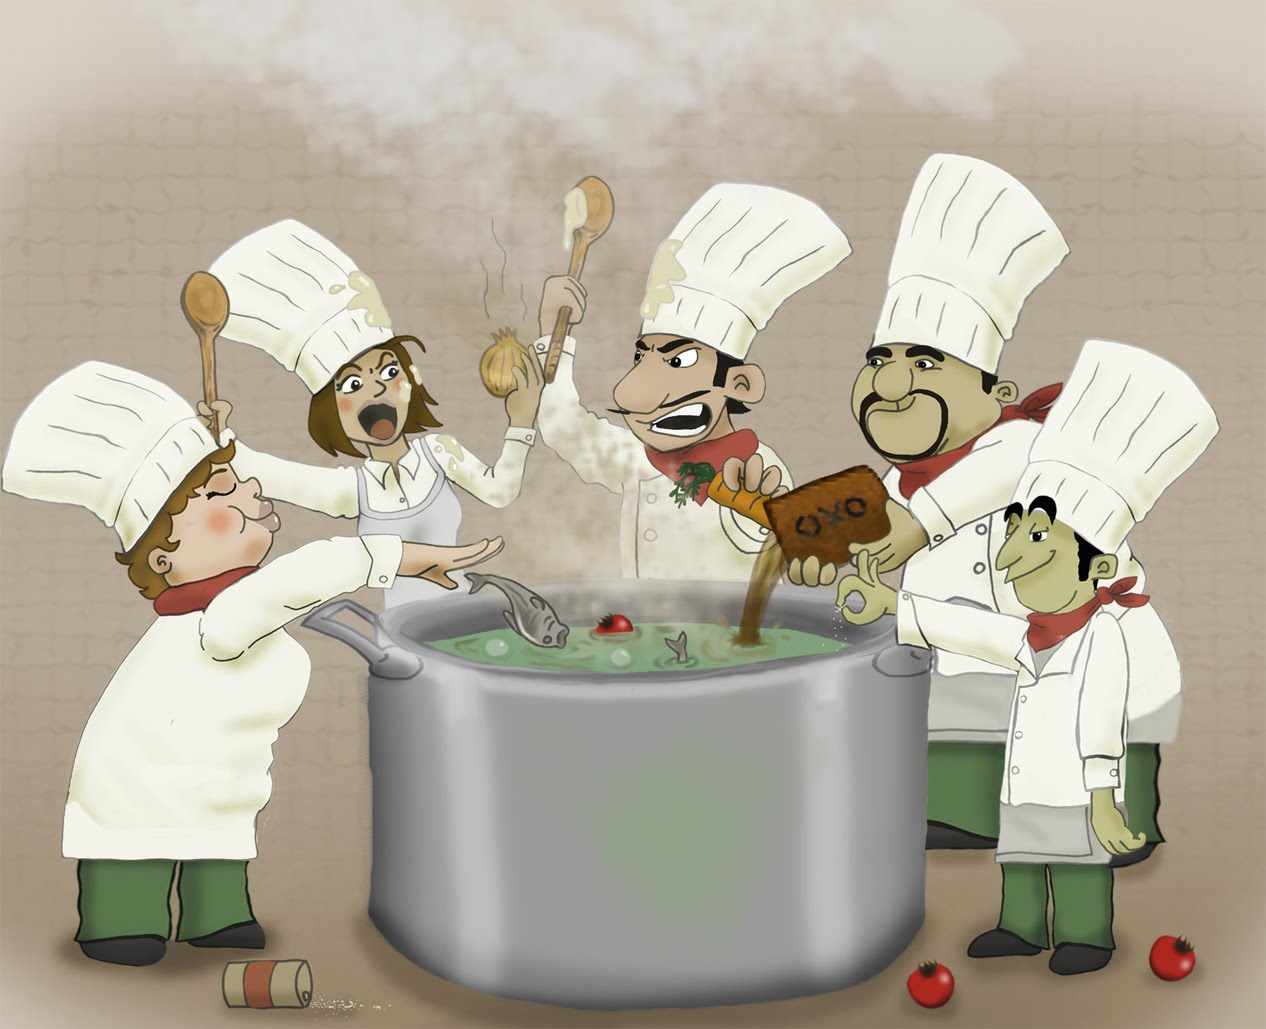 Too Many Cooks Spoil Security